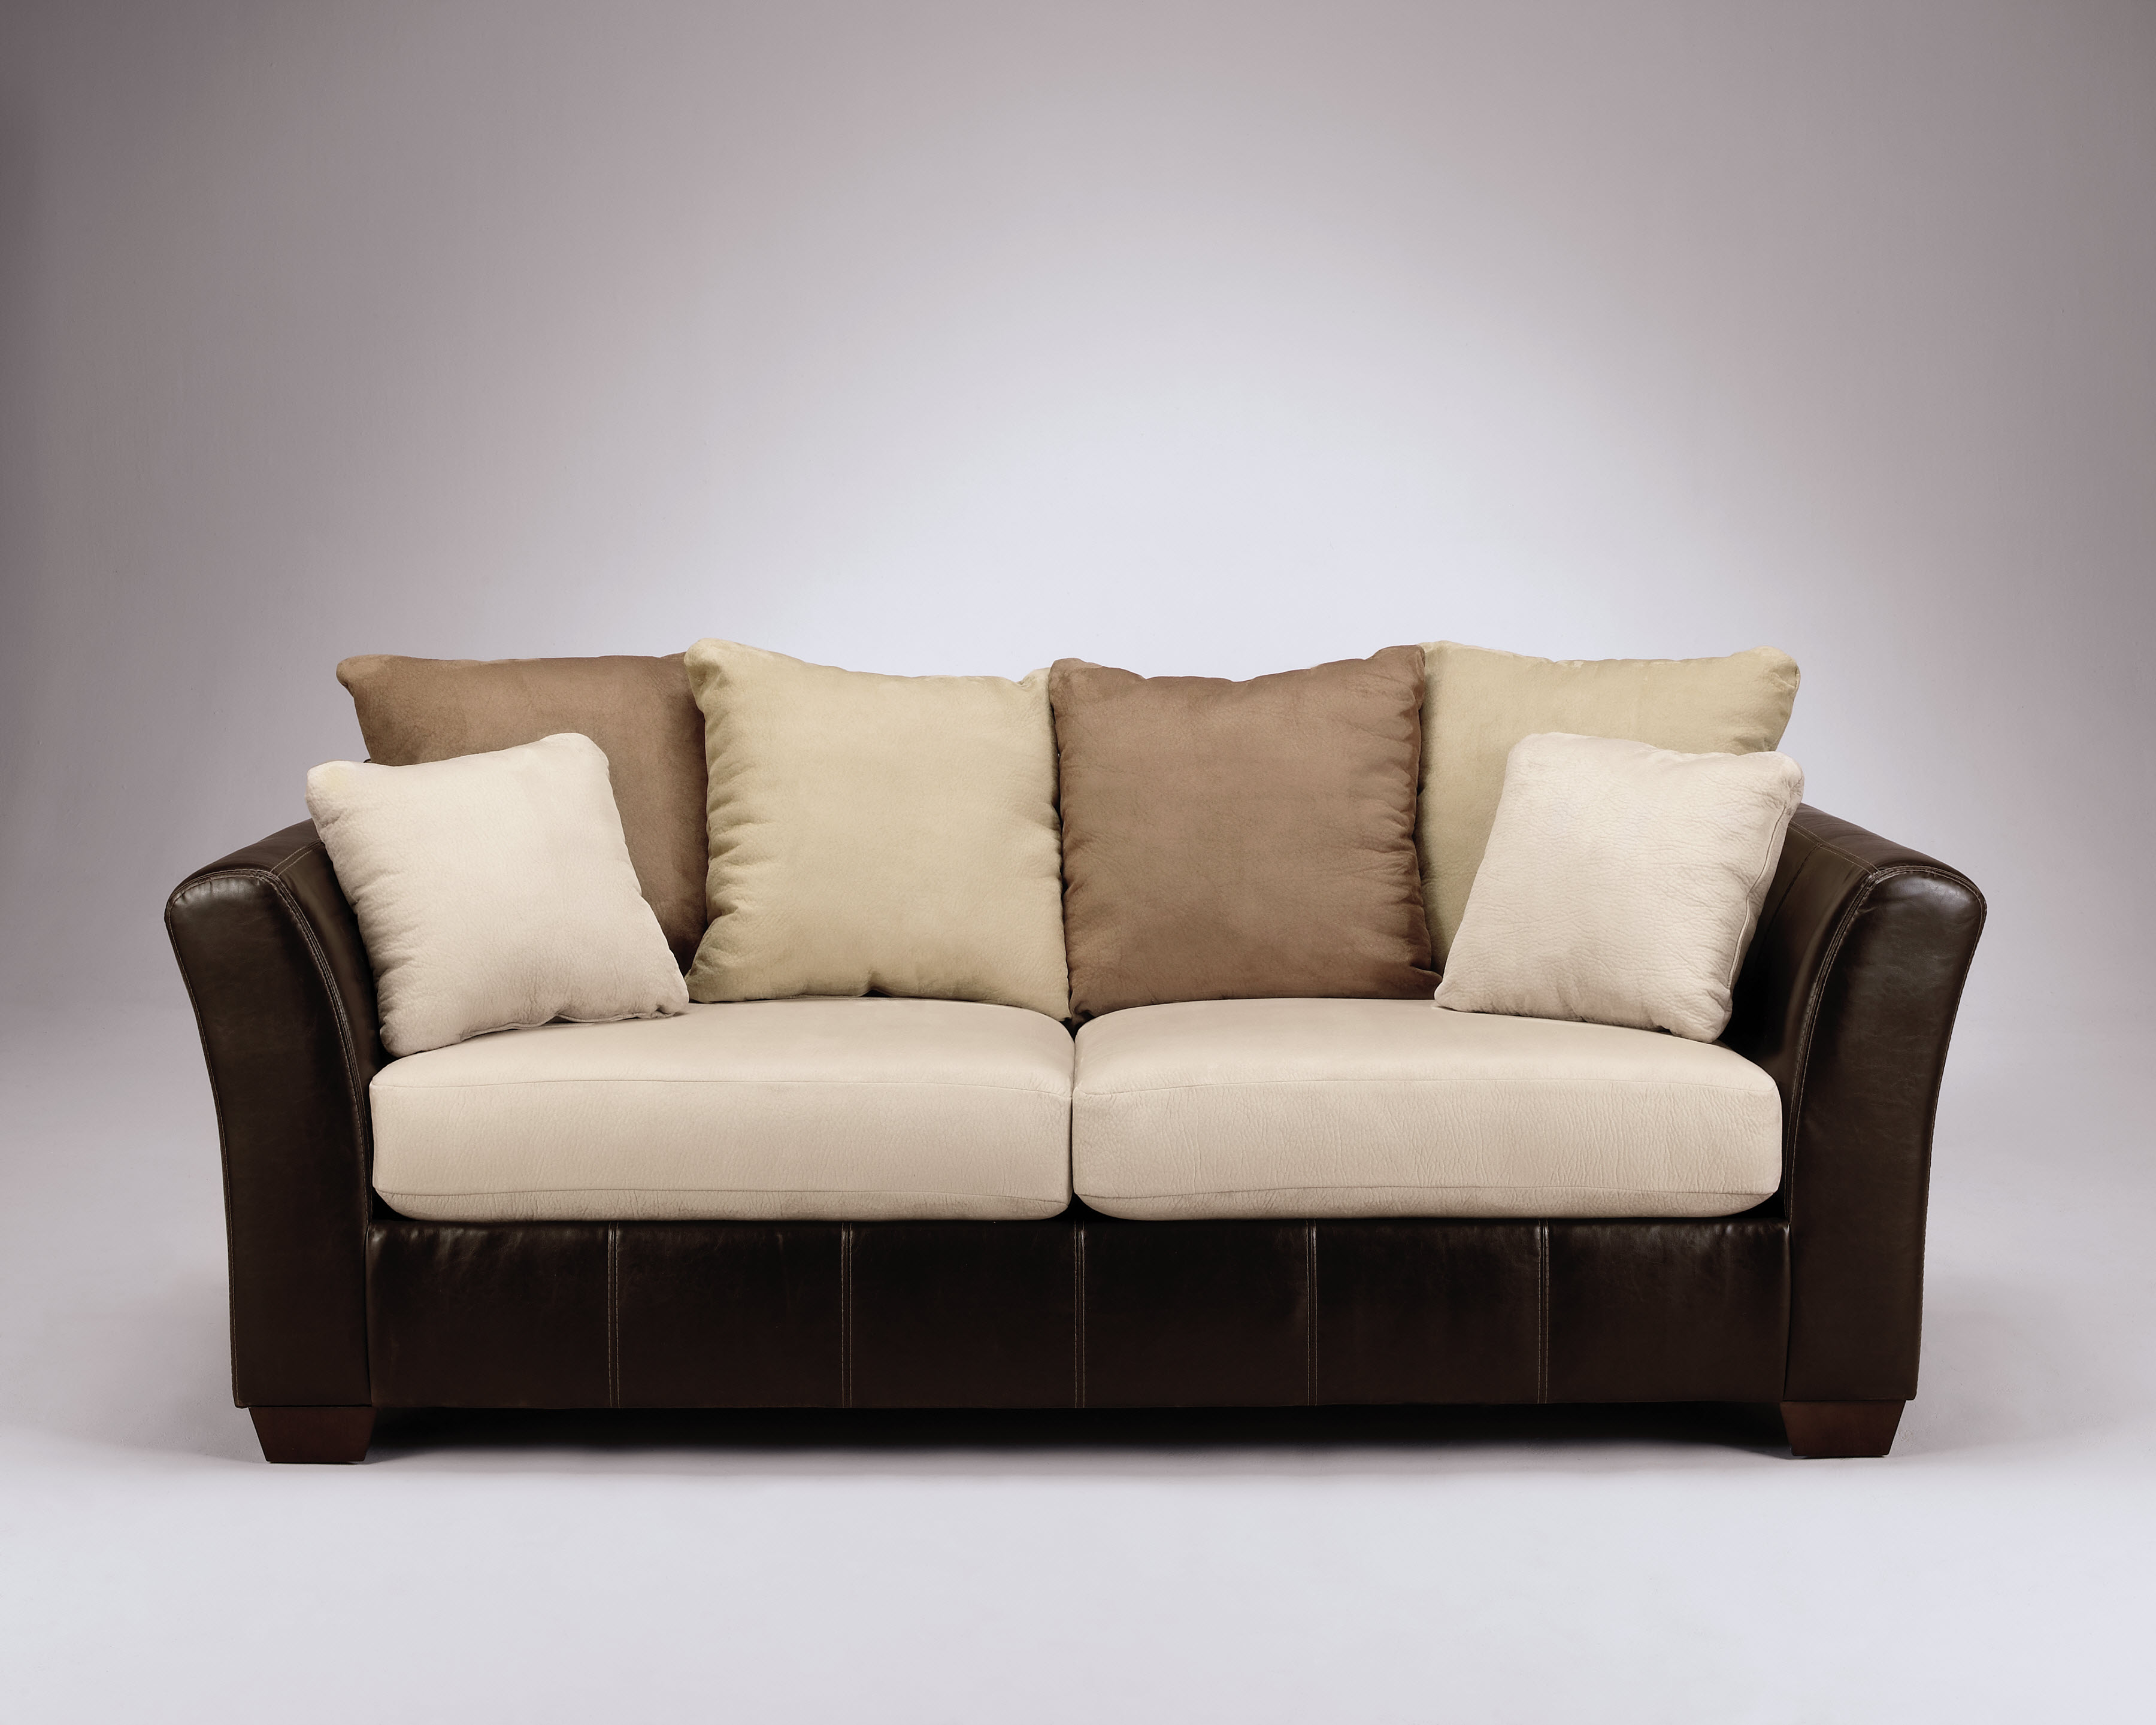 latest two seater recliner sofa inspiration-Superb Two Seater Recliner sofa Construction